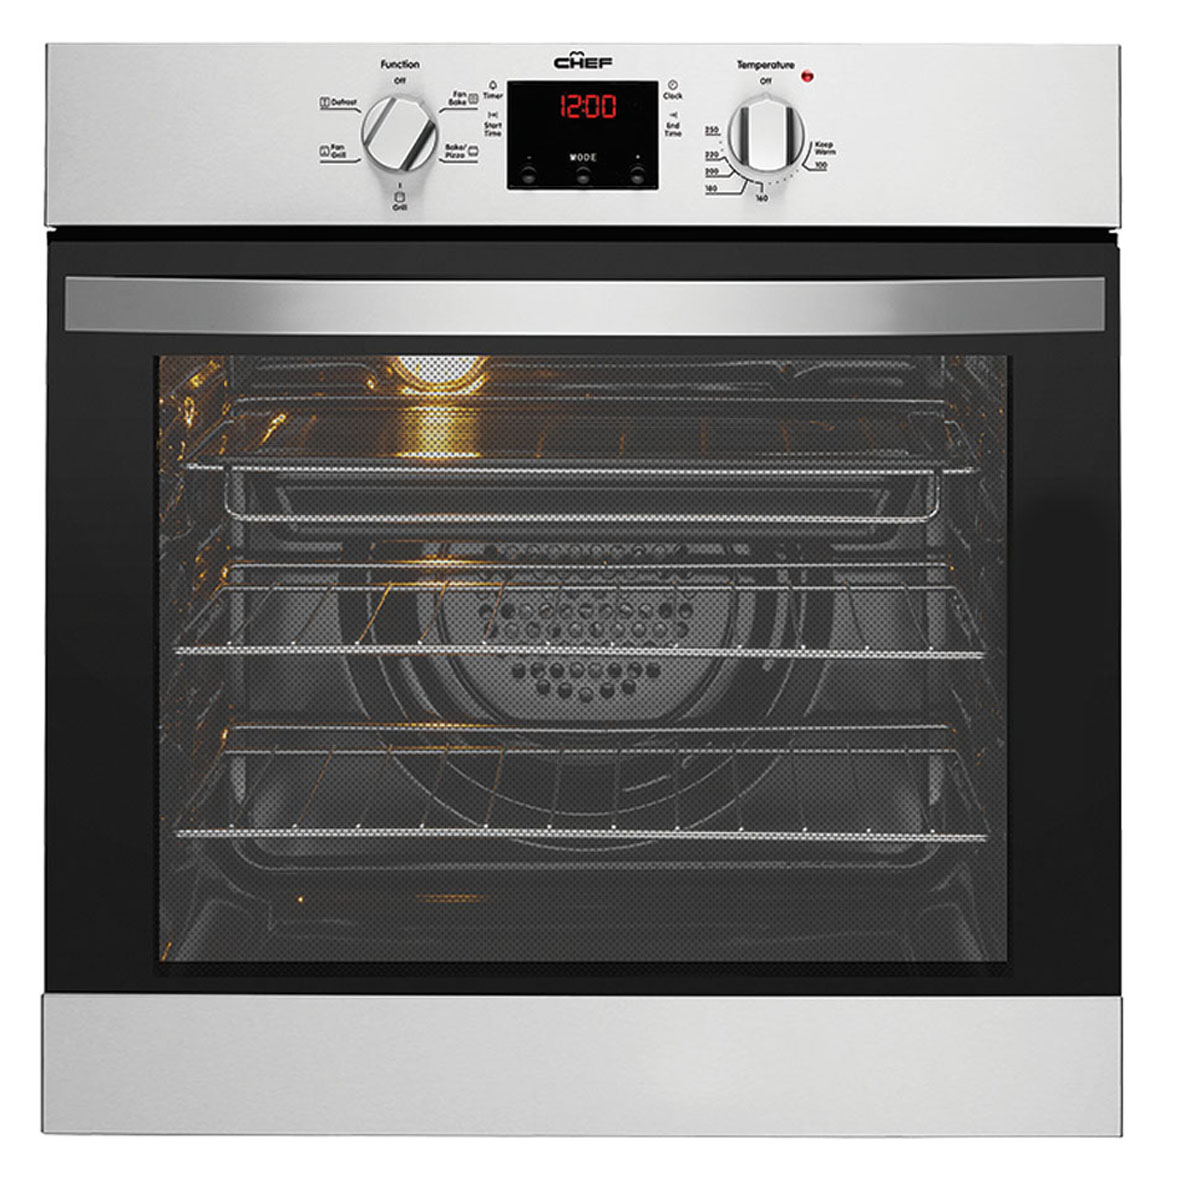 Chef CVE614SA Electric Wall Oven